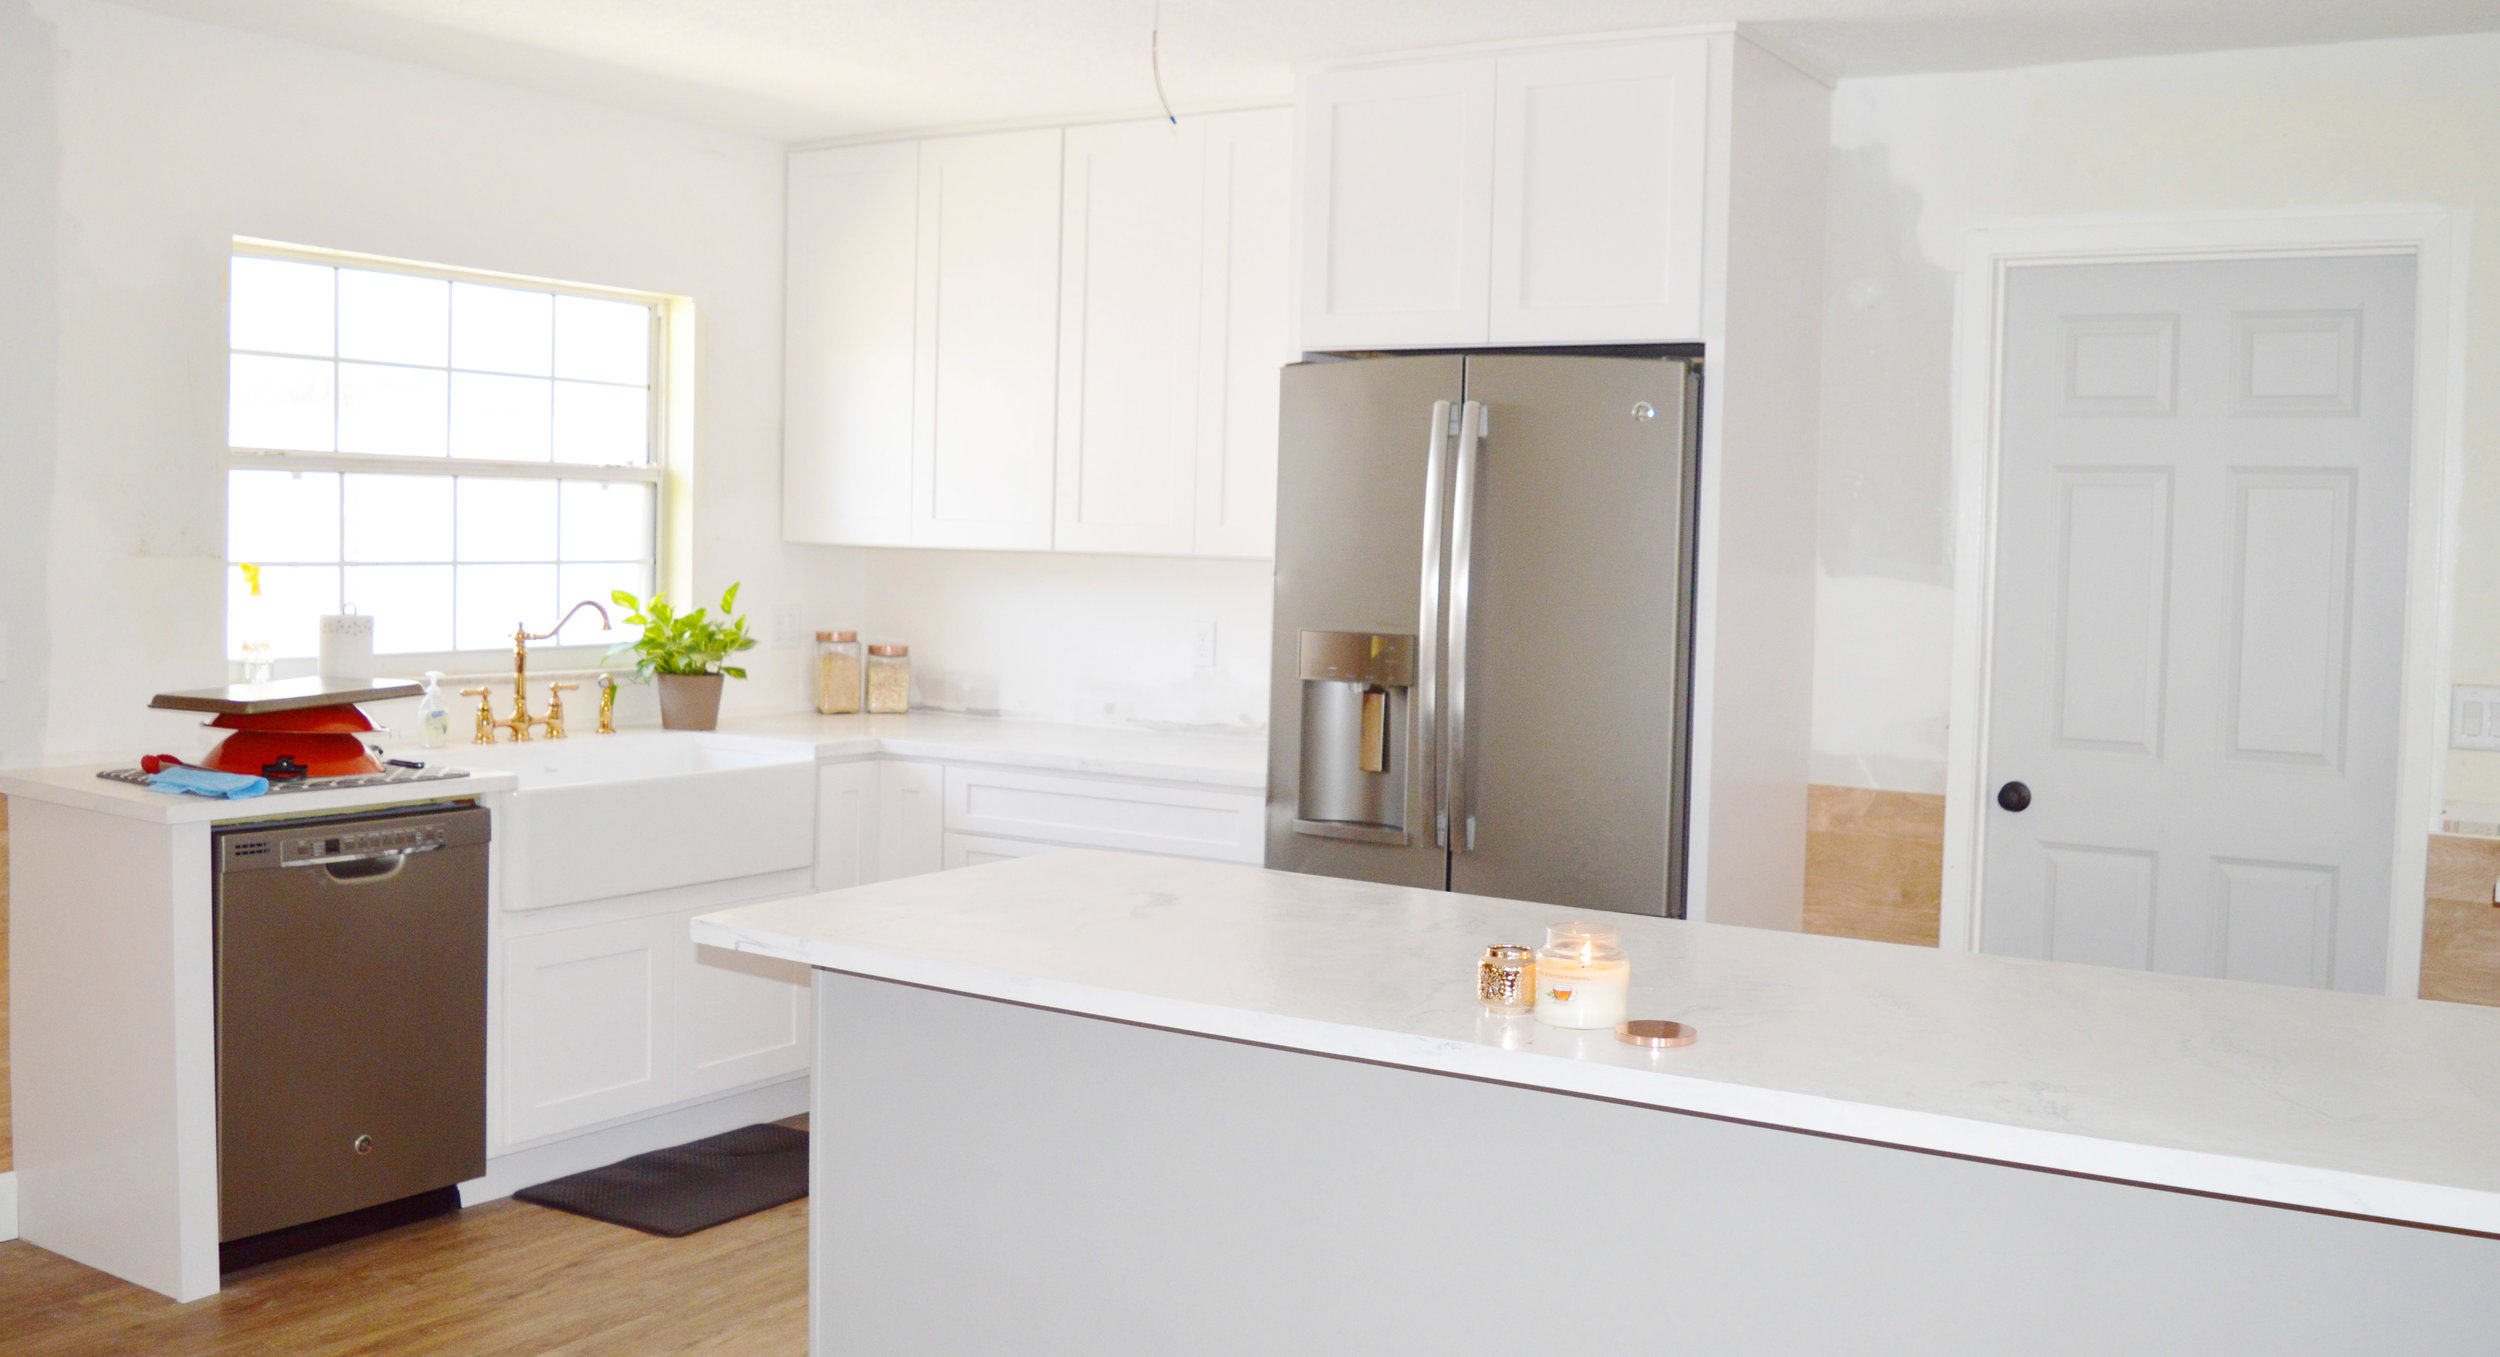 Our Slate Appliances in action when we first moved in!